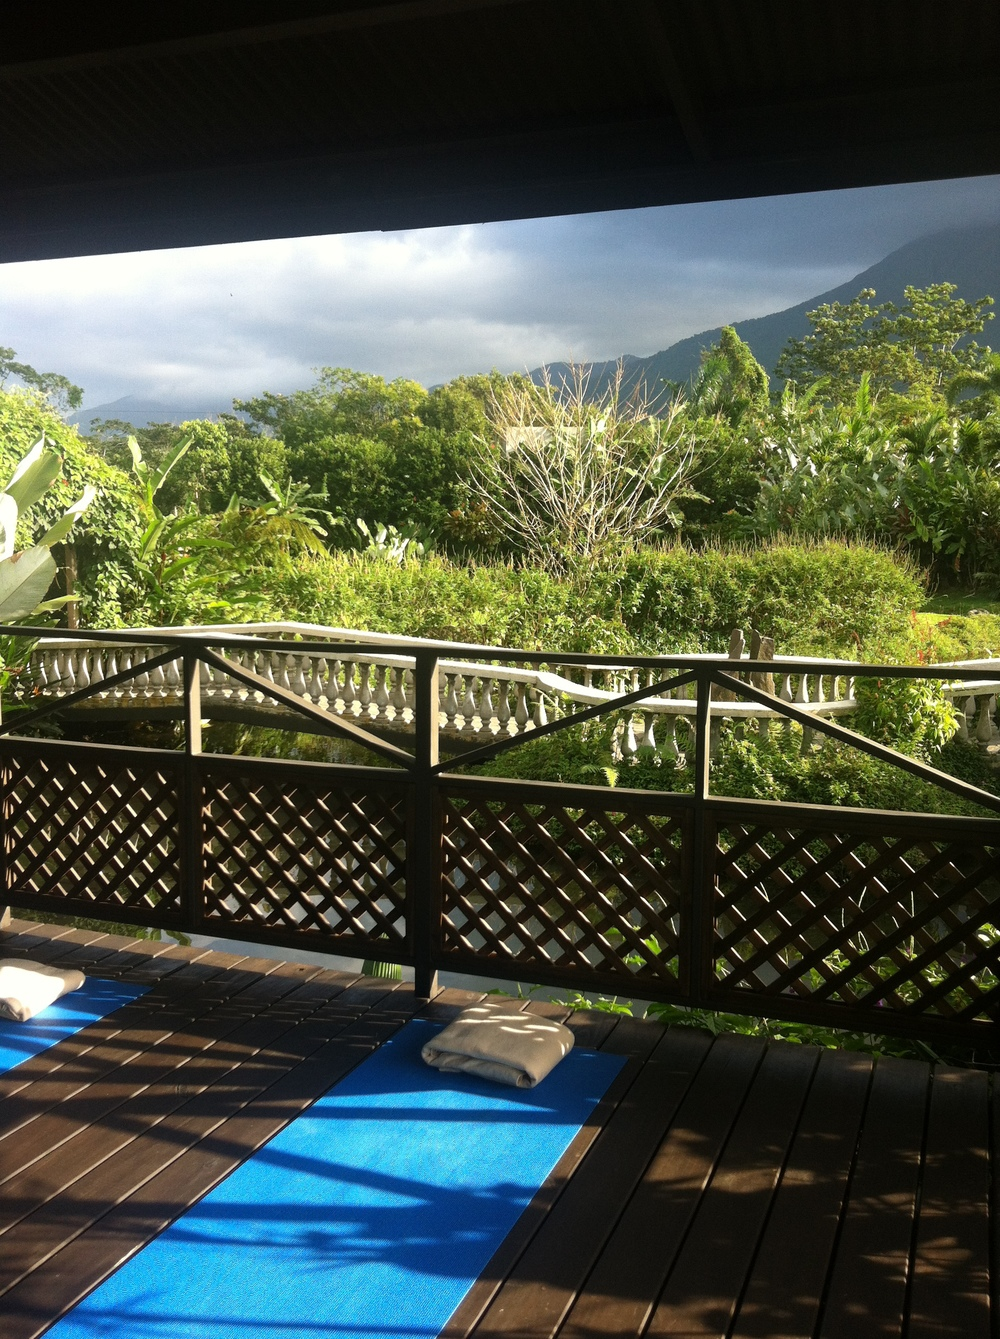 "Thank you for the inspirational photo and words @mrmlfr ""This was taken at a spa with one of the best views of Arenal Volcano in Costa Rica. Meditation and yoga help me keep an open heart, mind and spirit. I was lucky enough to find this spot for some morning stretches surrounded by the most perfectly quiet and still view""."